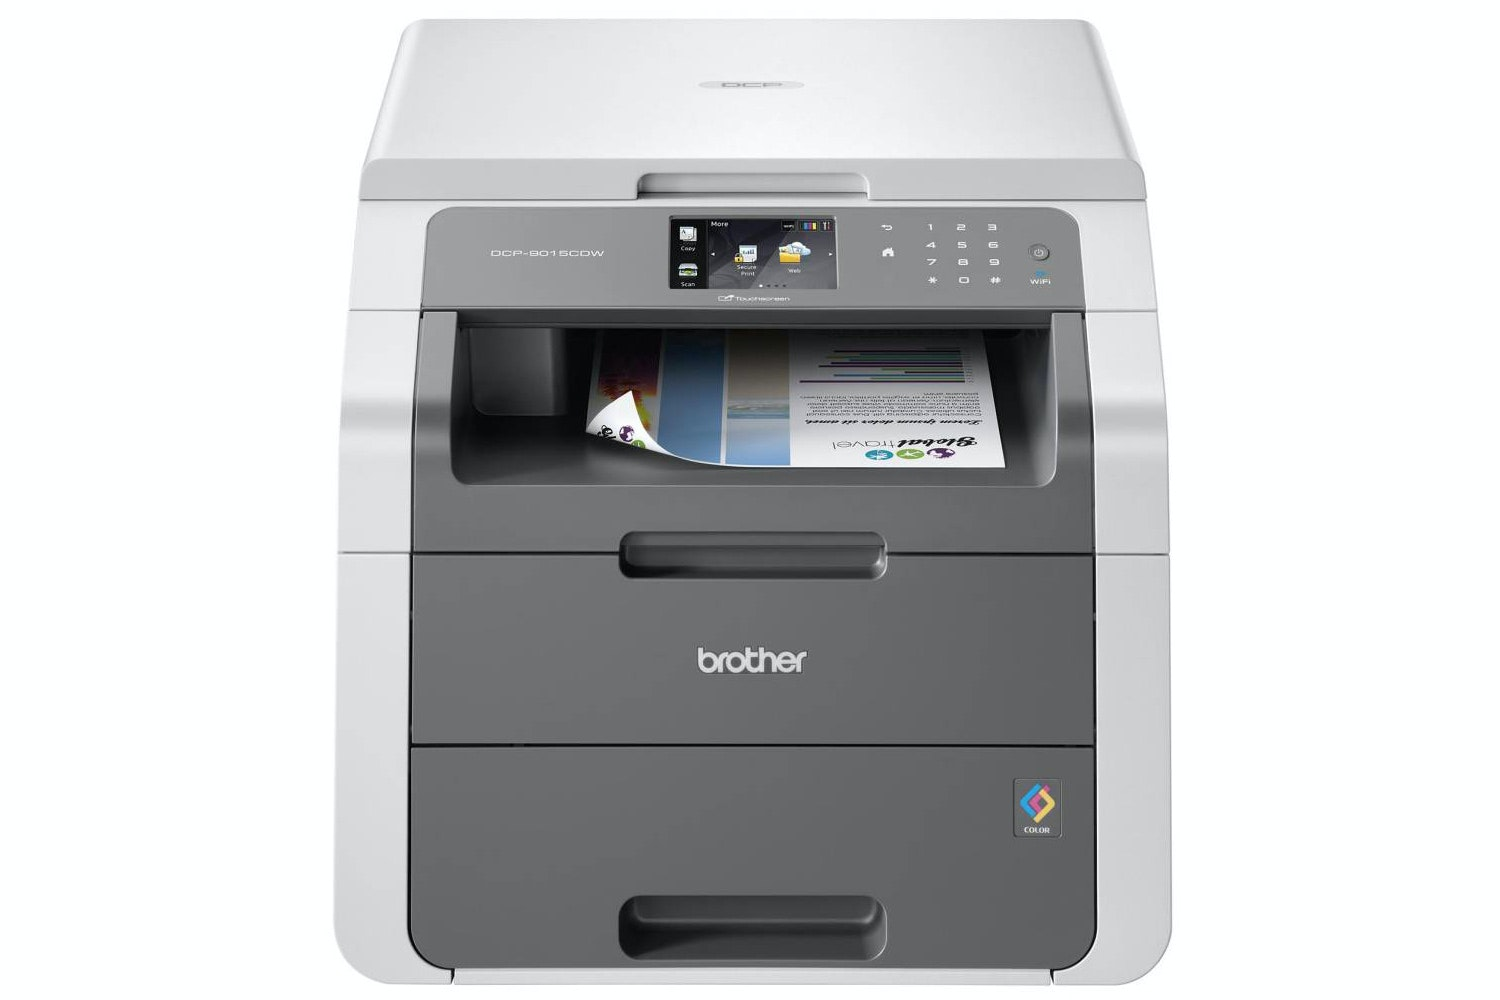 Brother Laser Printer | DCP9015CDW